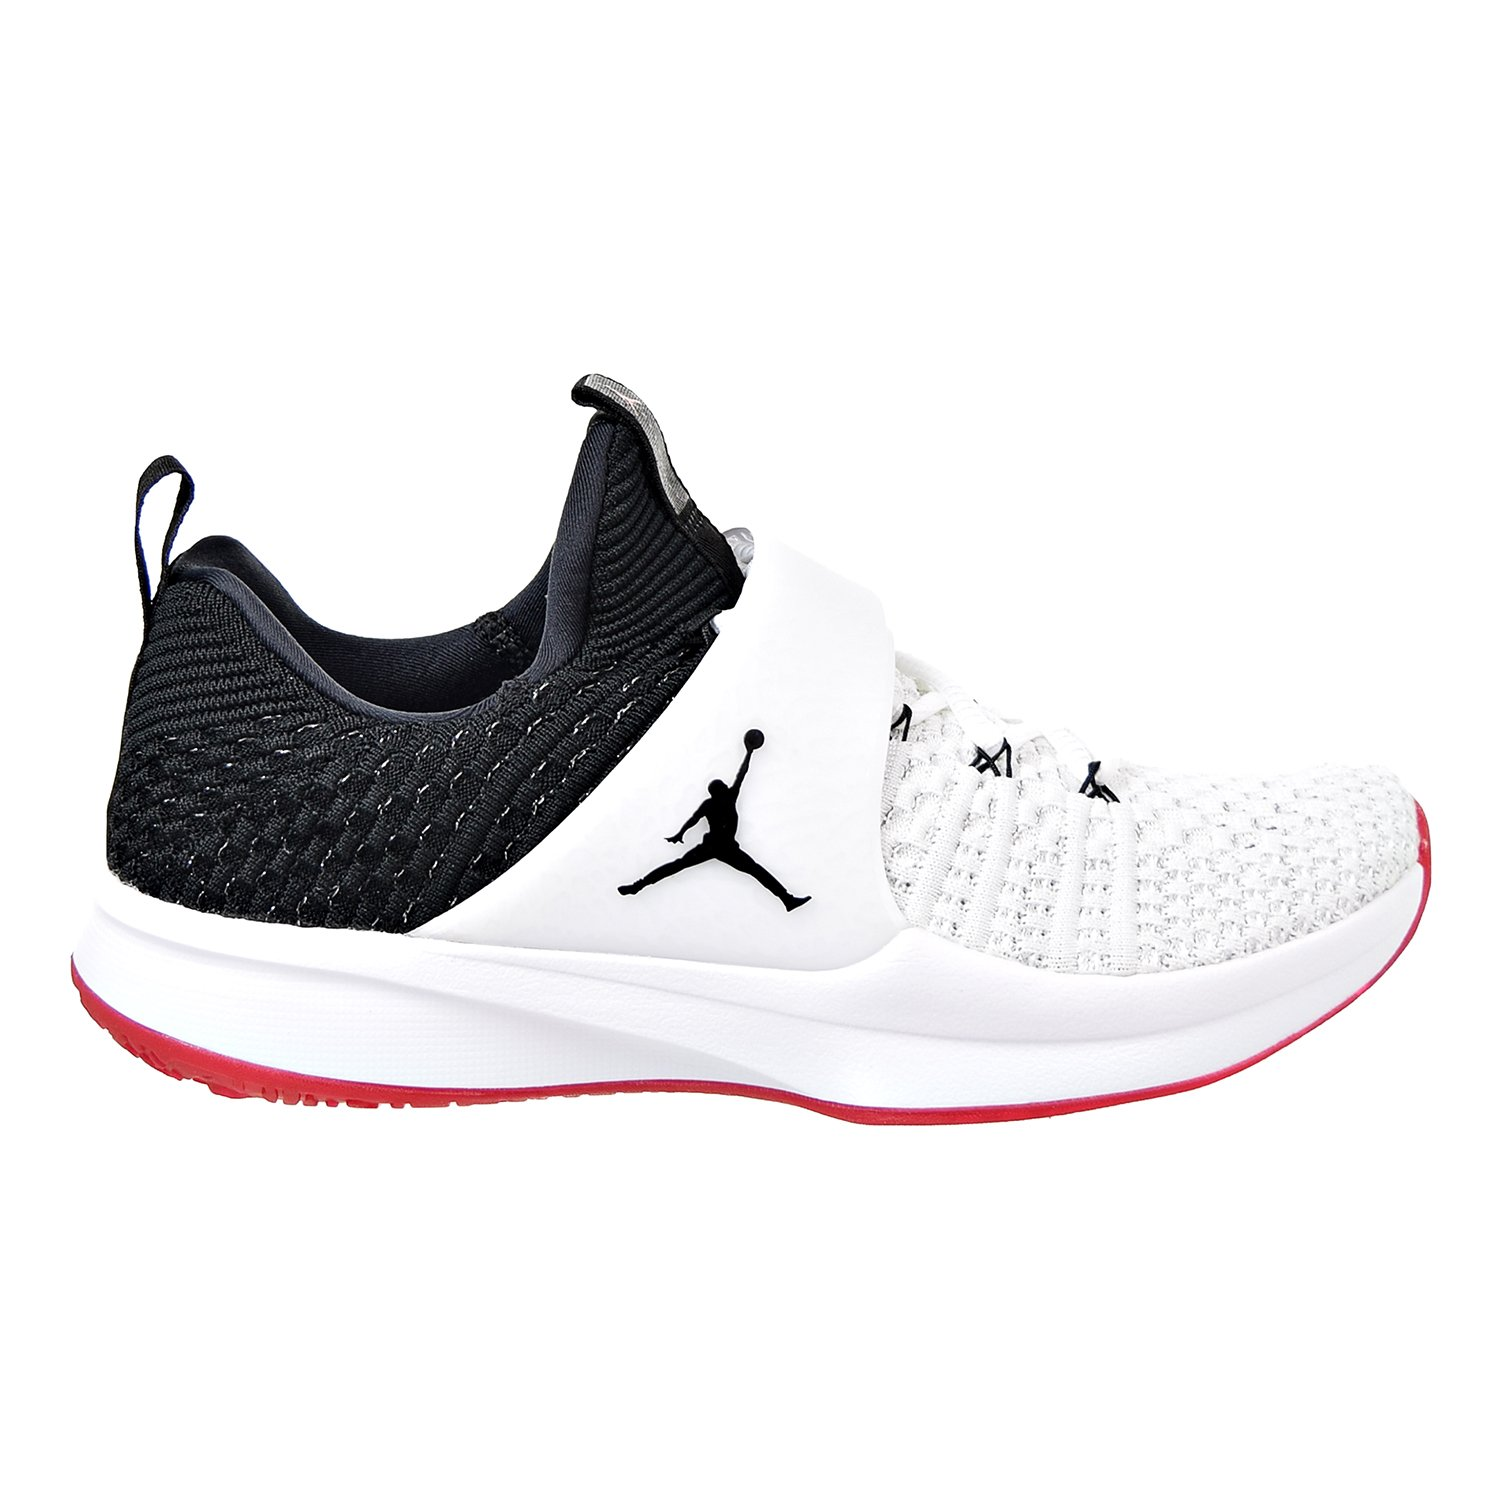 quality design 315b3 7a376 Amazon.com   NIKE Jordan Trainer 2 Flyknit Men s Training Shoes White Black- Black-Gym Red 921210-101 (11 D(M) US)   Fitness   Cross-Training